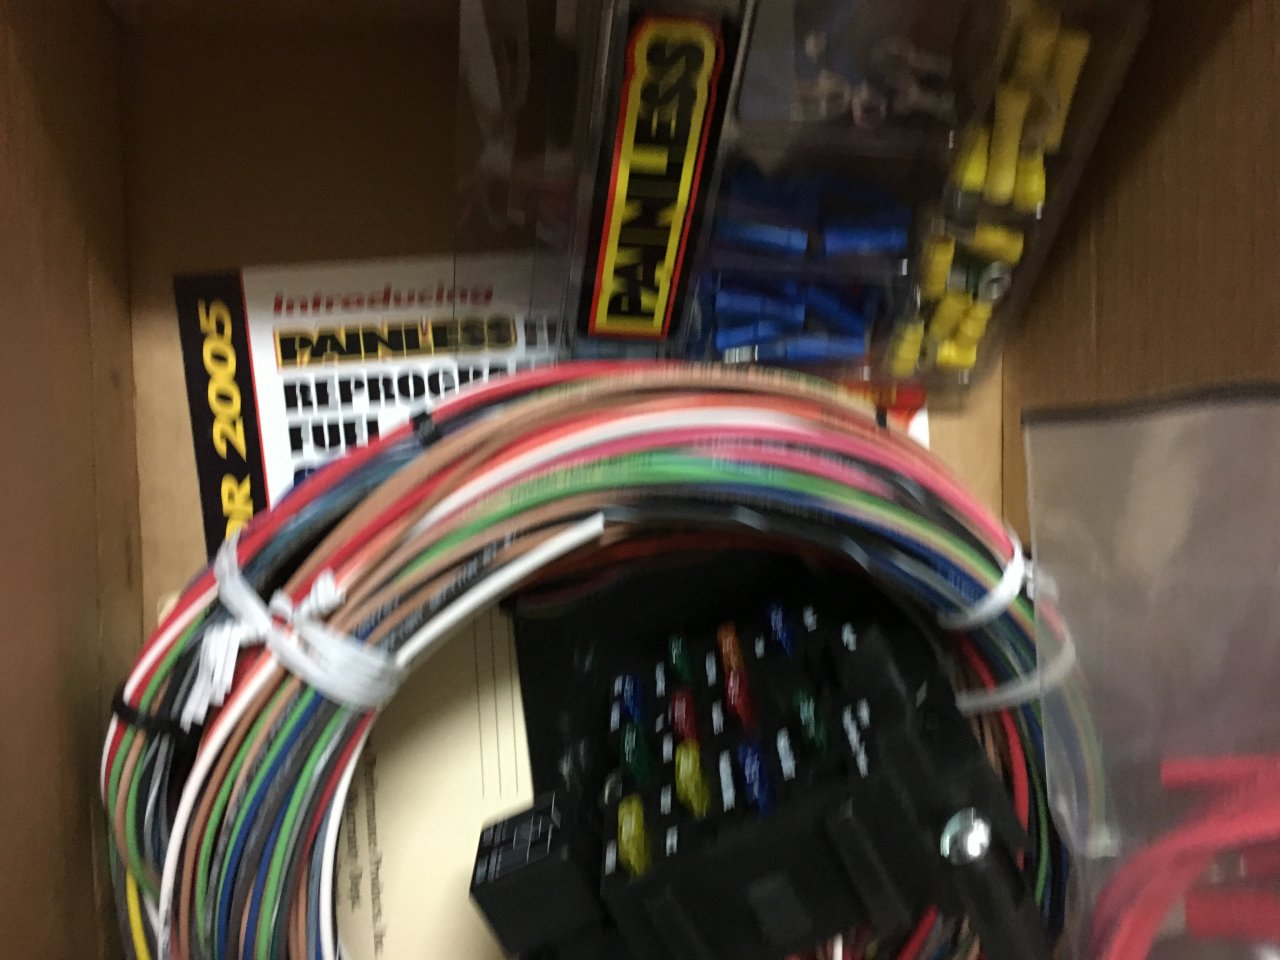 For Sale Painless 10107 Wiring Harness New In Box Ih8mud Forum Scout 80 Img 0554